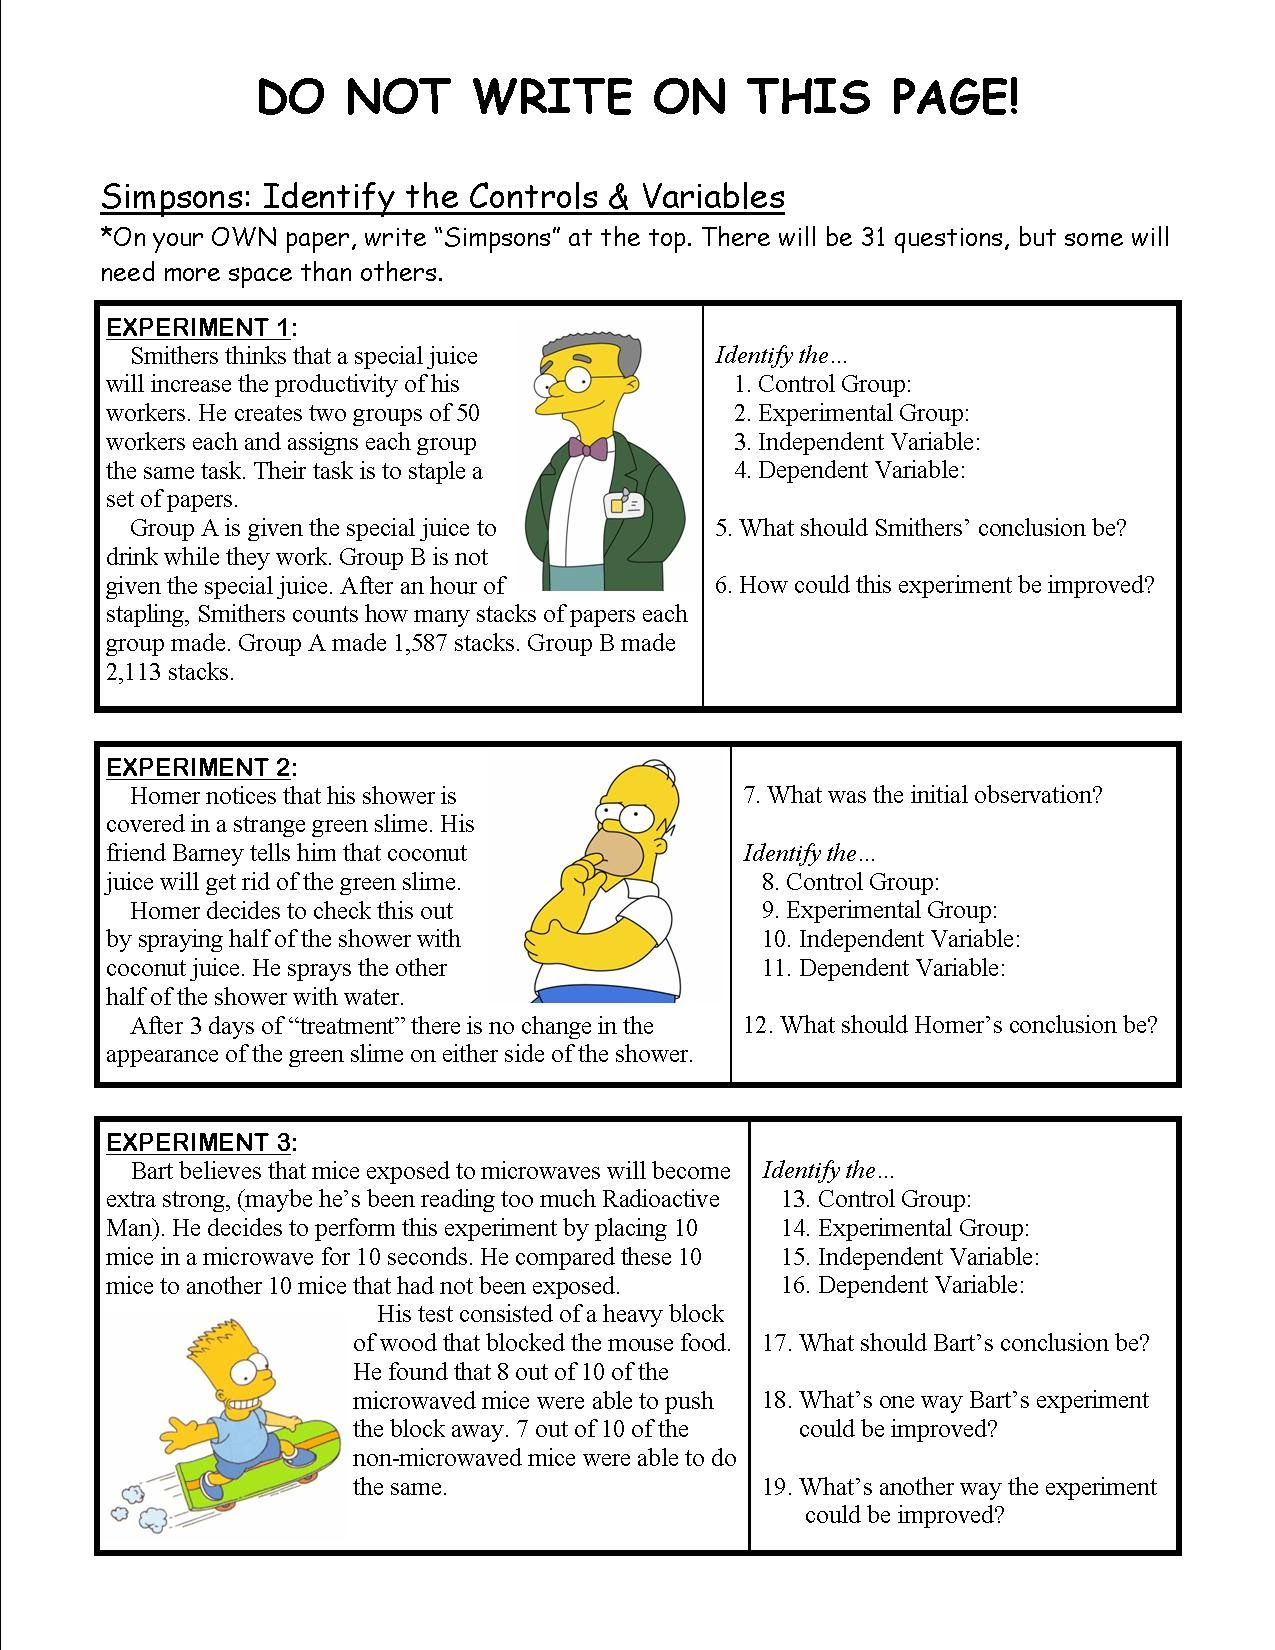 simpsons science worksheet simpsons best free printable worksheets. Black Bedroom Furniture Sets. Home Design Ideas